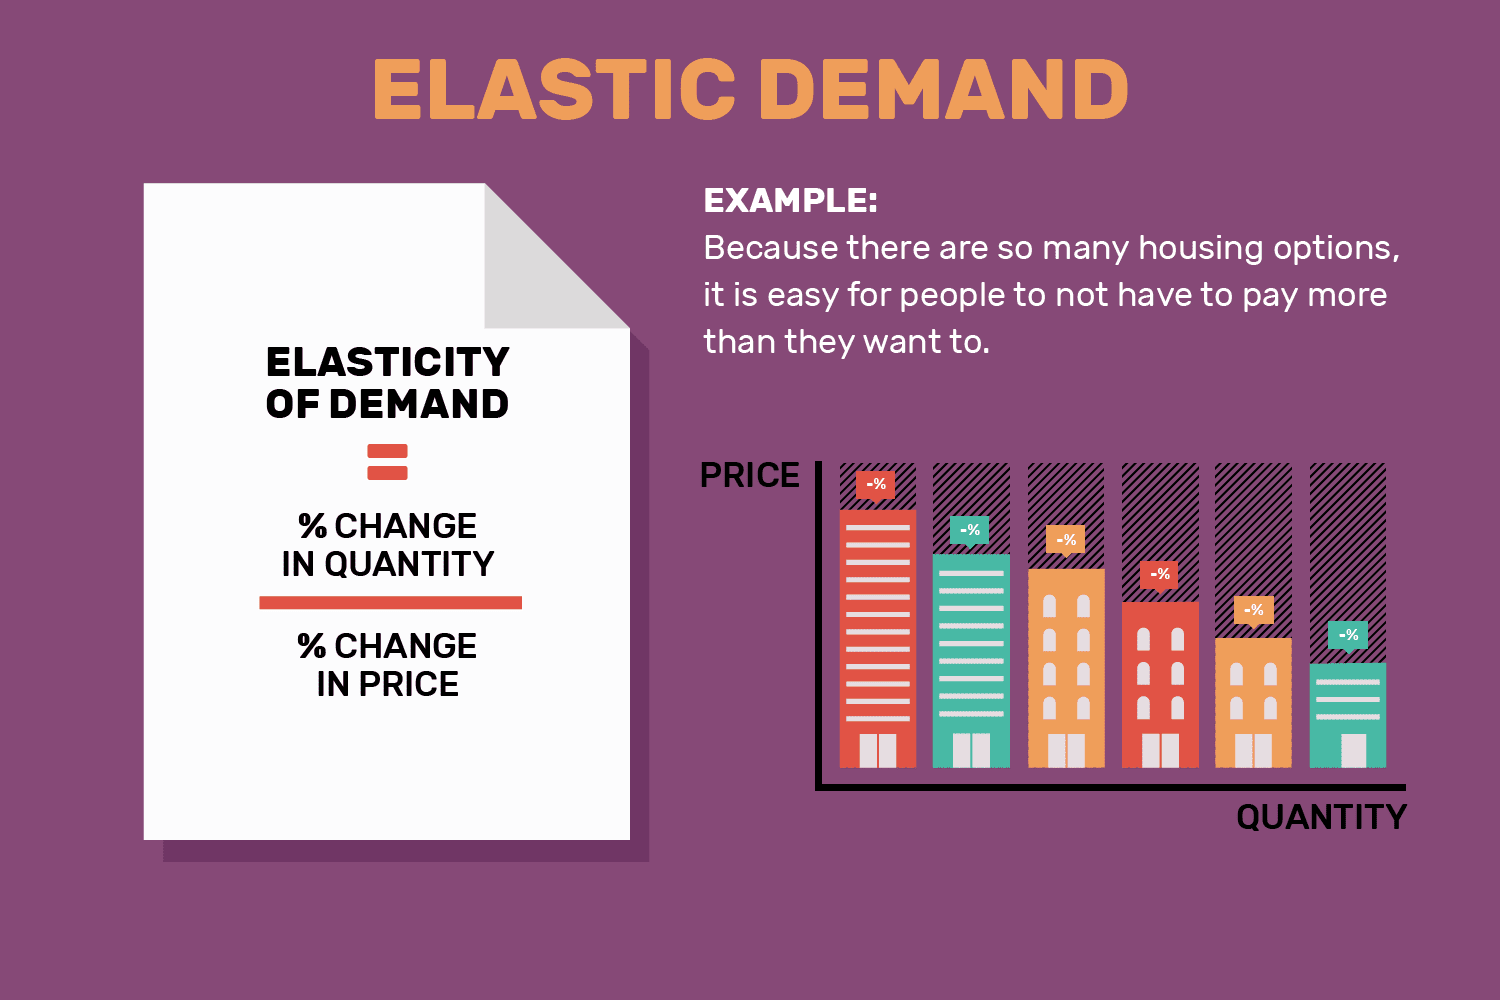 Elasticity Elasticity Of Demand Definition Economics Formula Project Management Small Business Guide